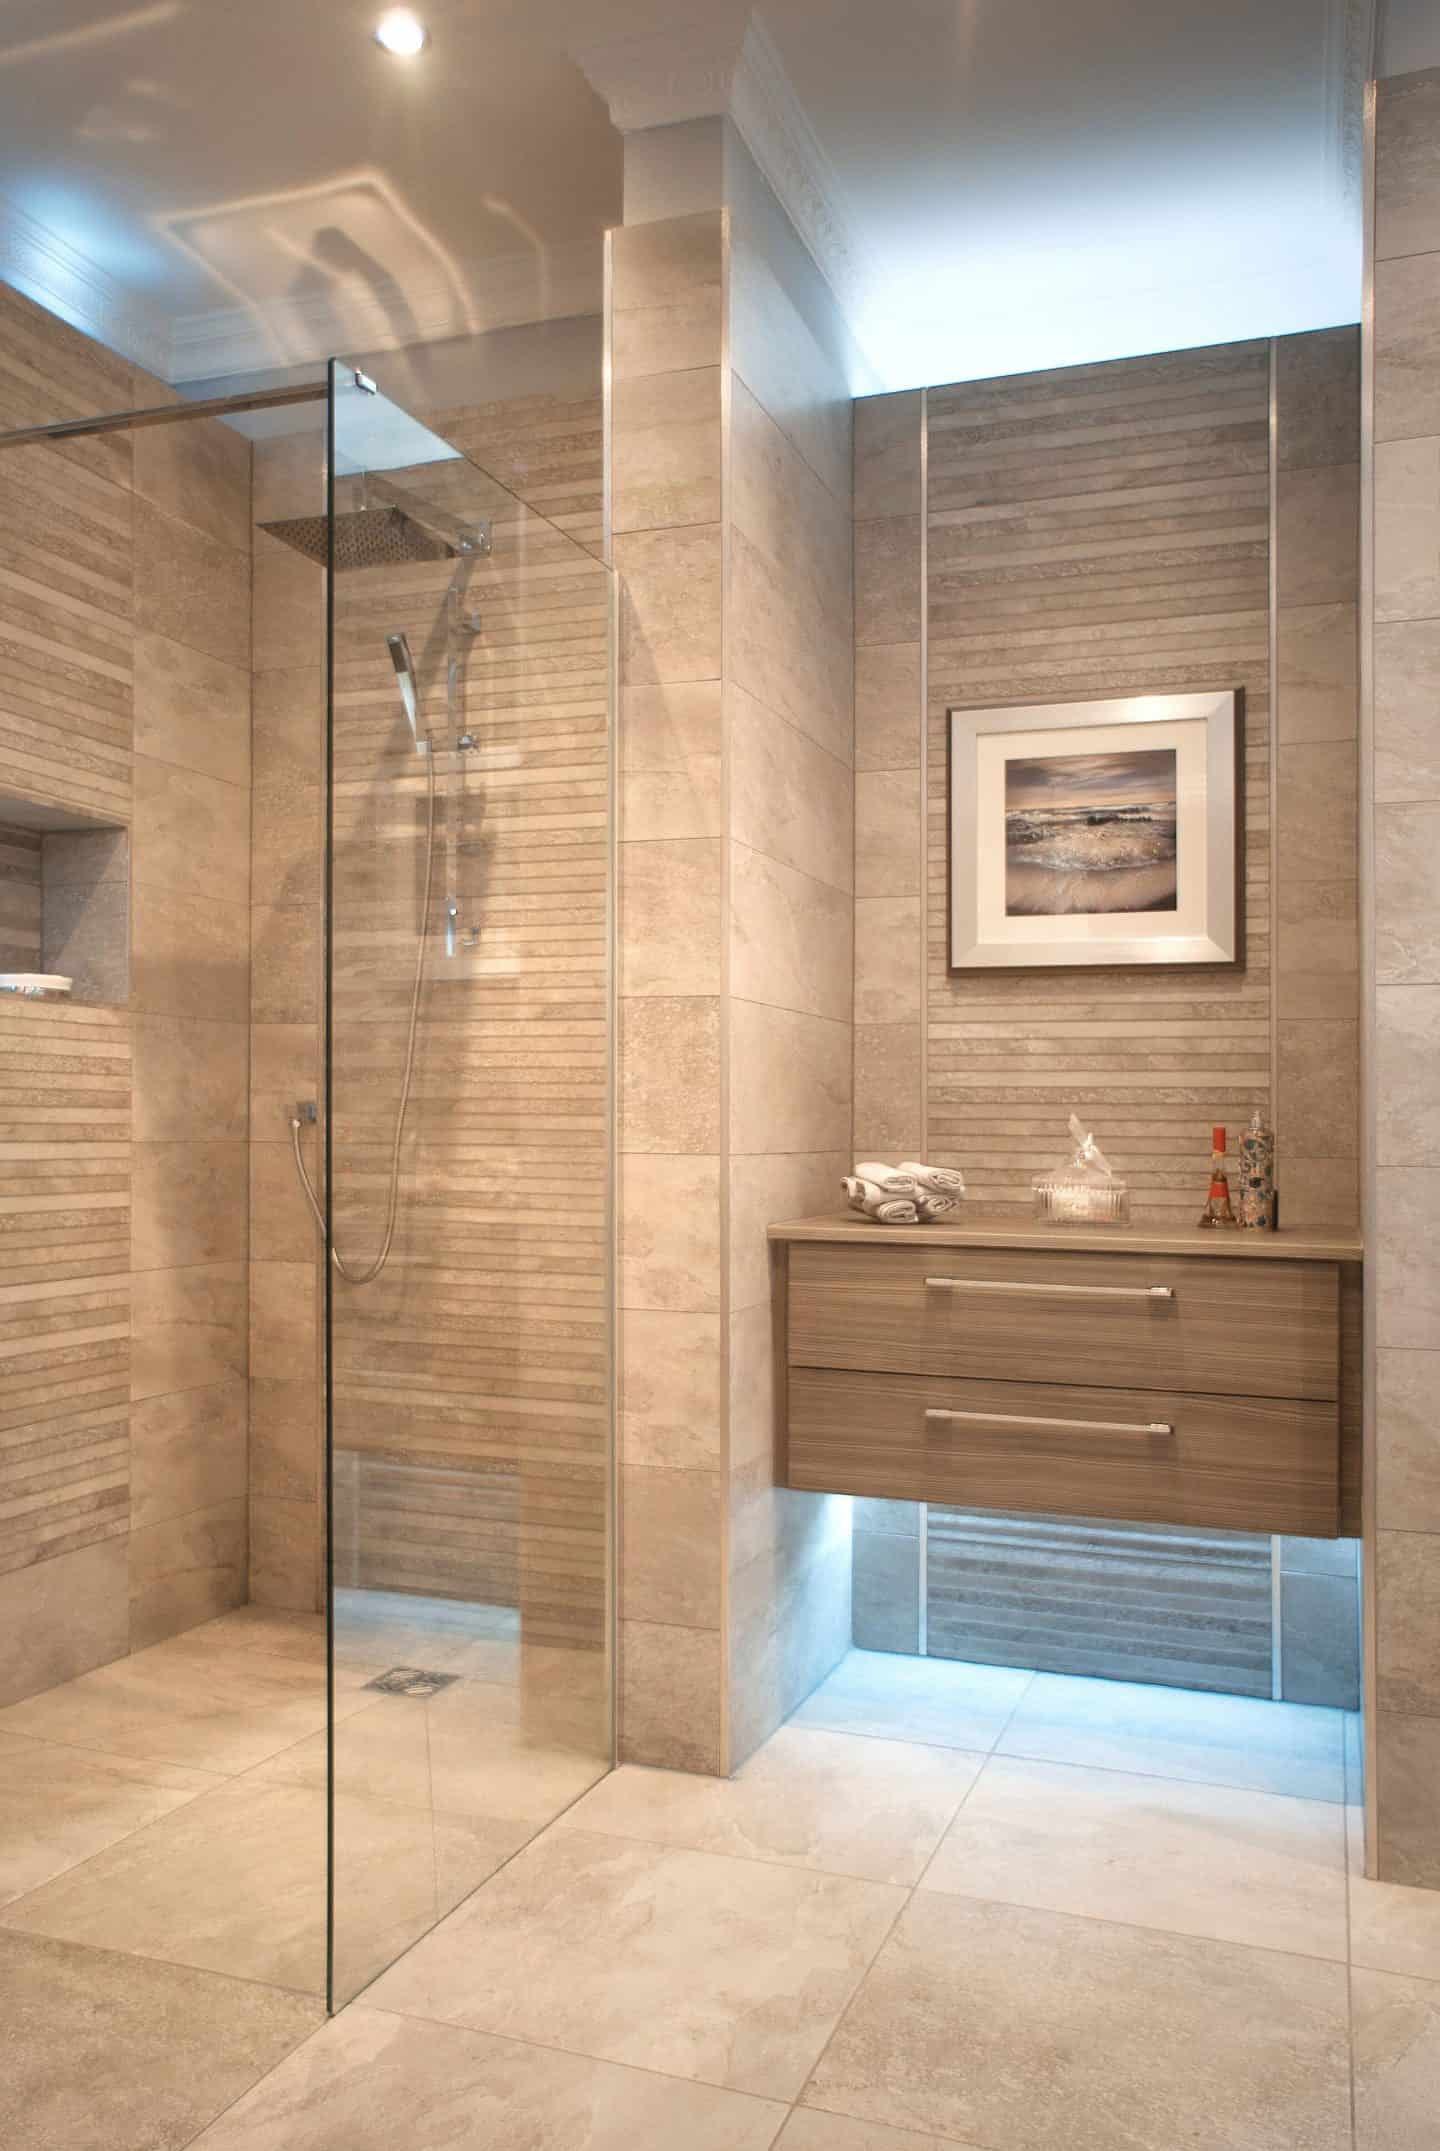 3 Bathroom Trends For 2019